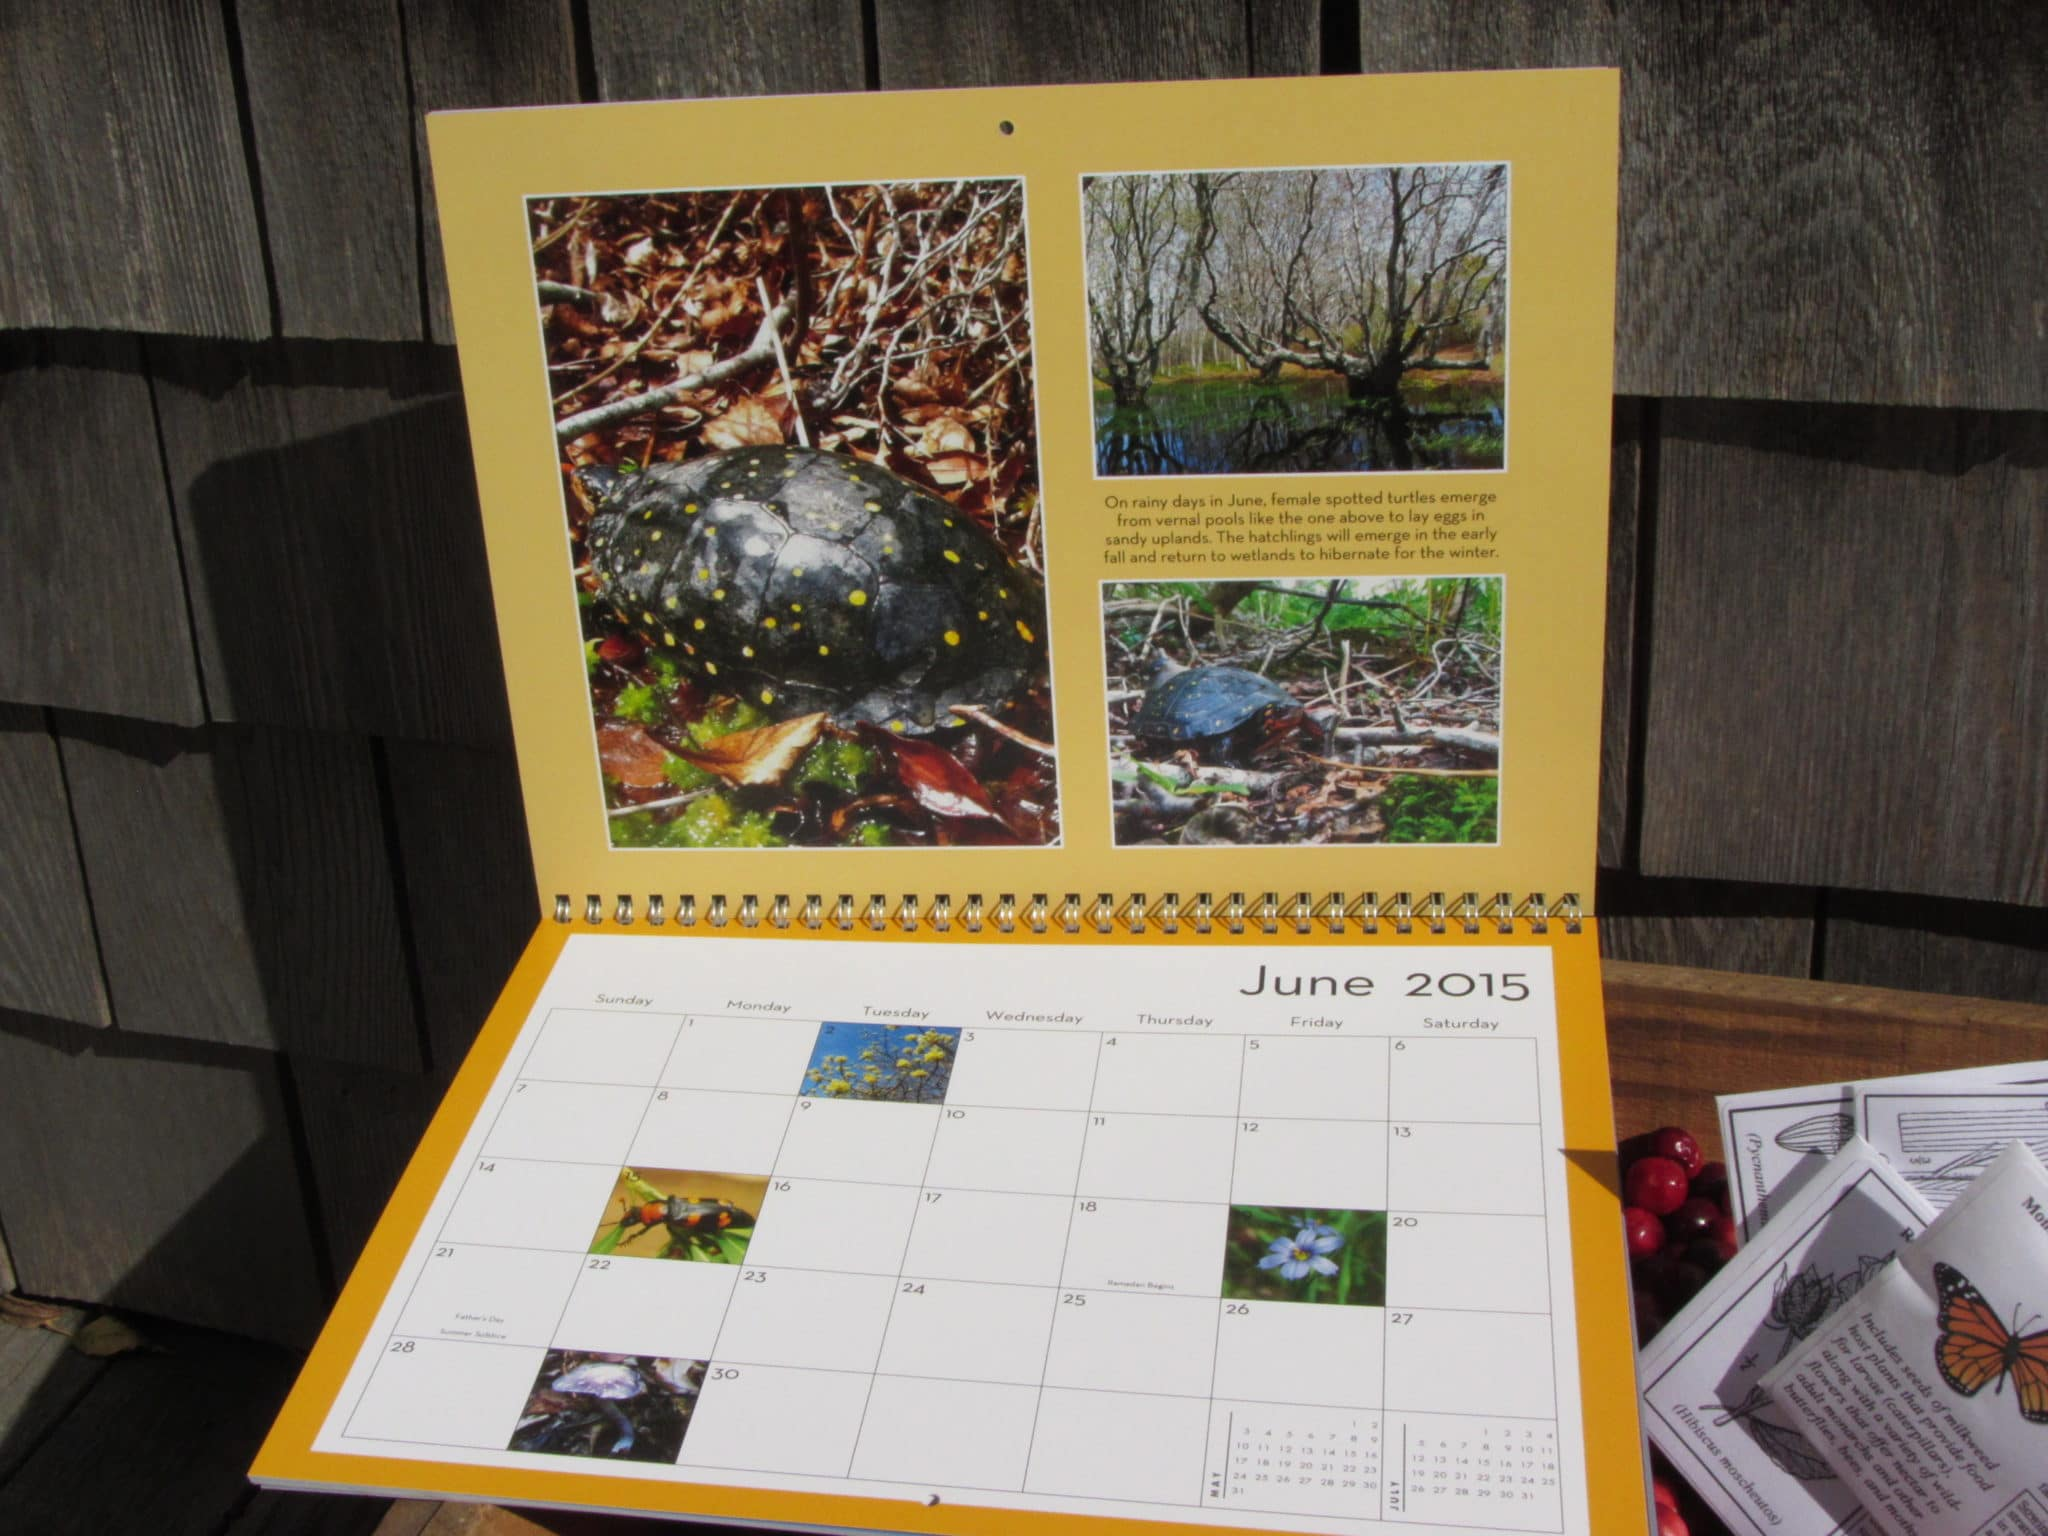 June 2015 NCF Calendar page, starring the spotted turtle (Clemys guttata).